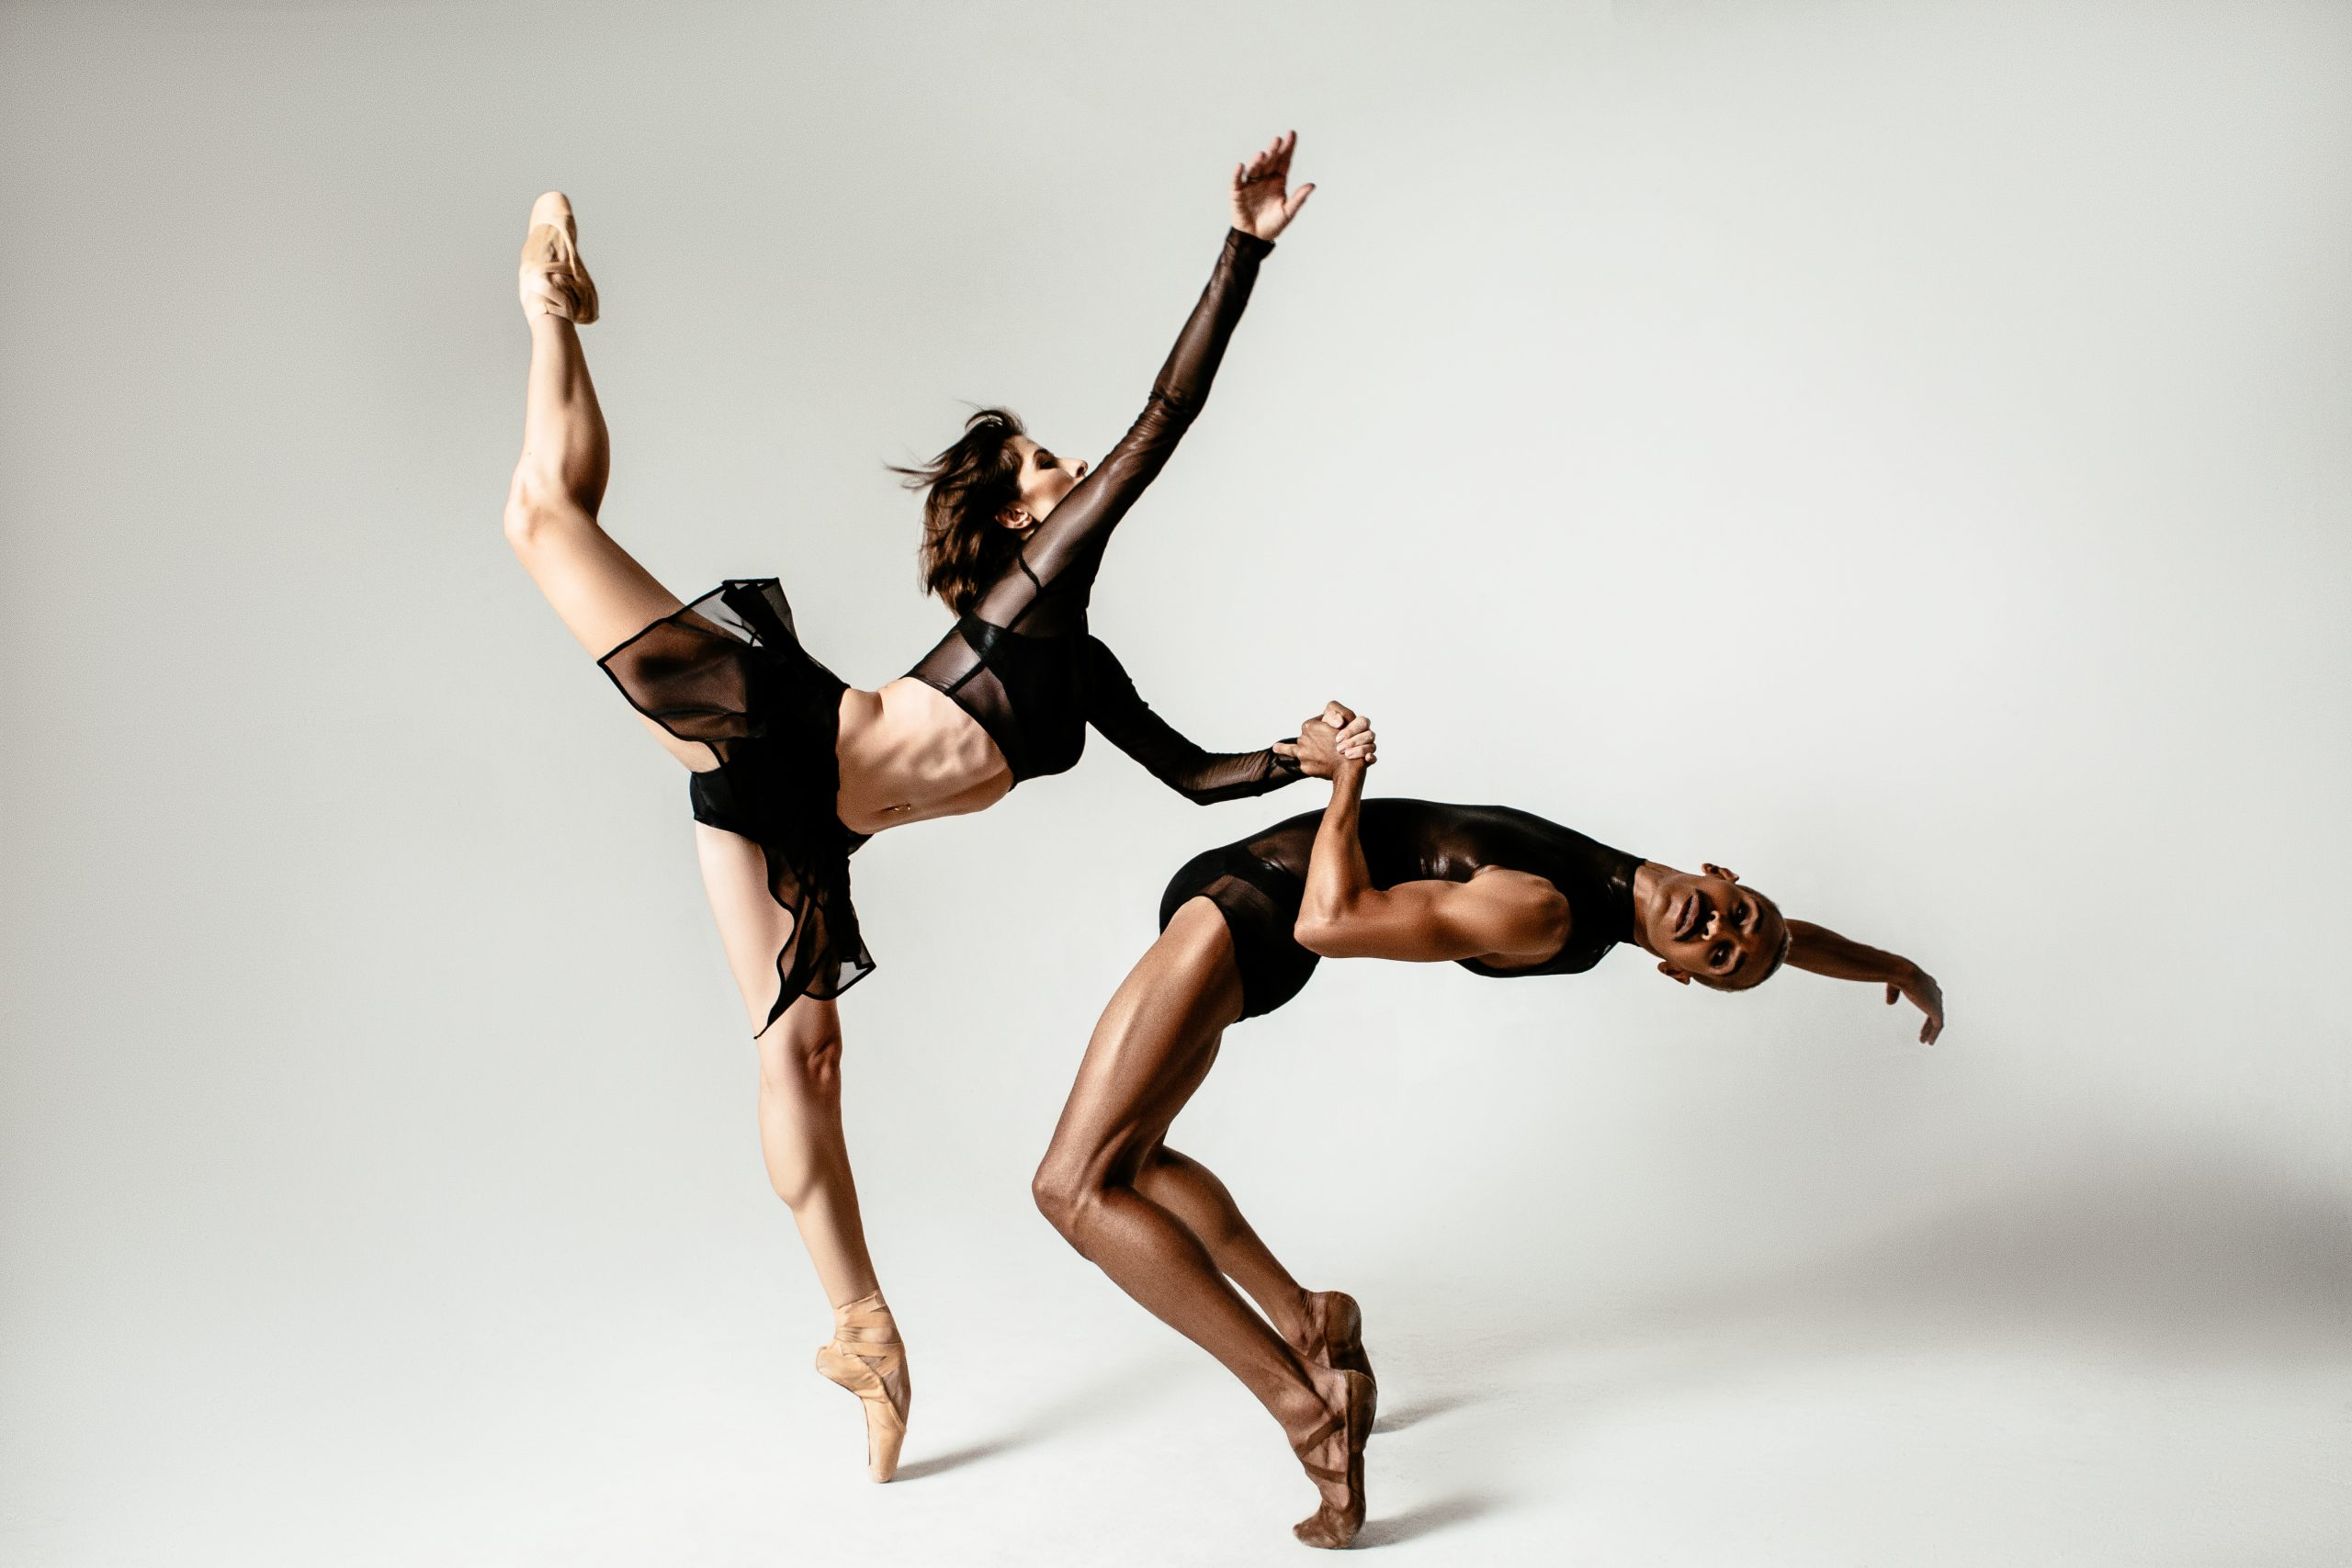 two professional dancers within the community